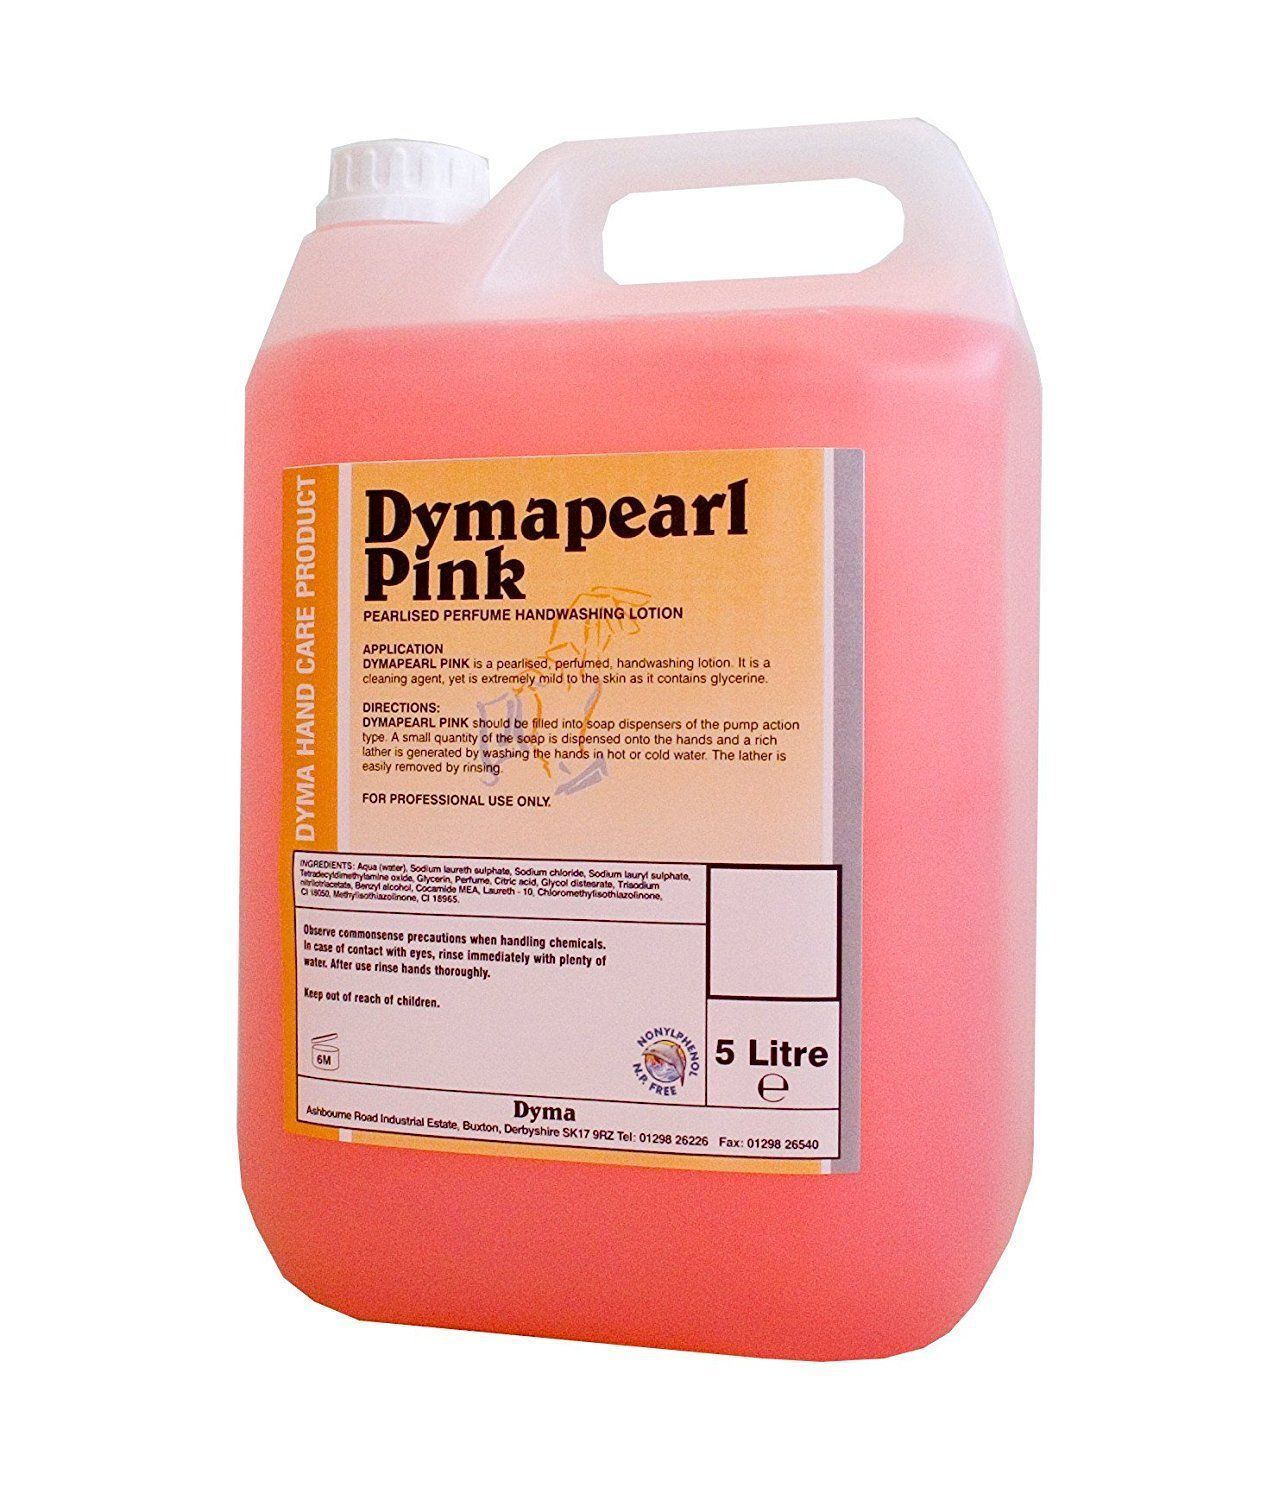 Details About Dymapearl Pink Hand Soap Perfumed Hand Washing